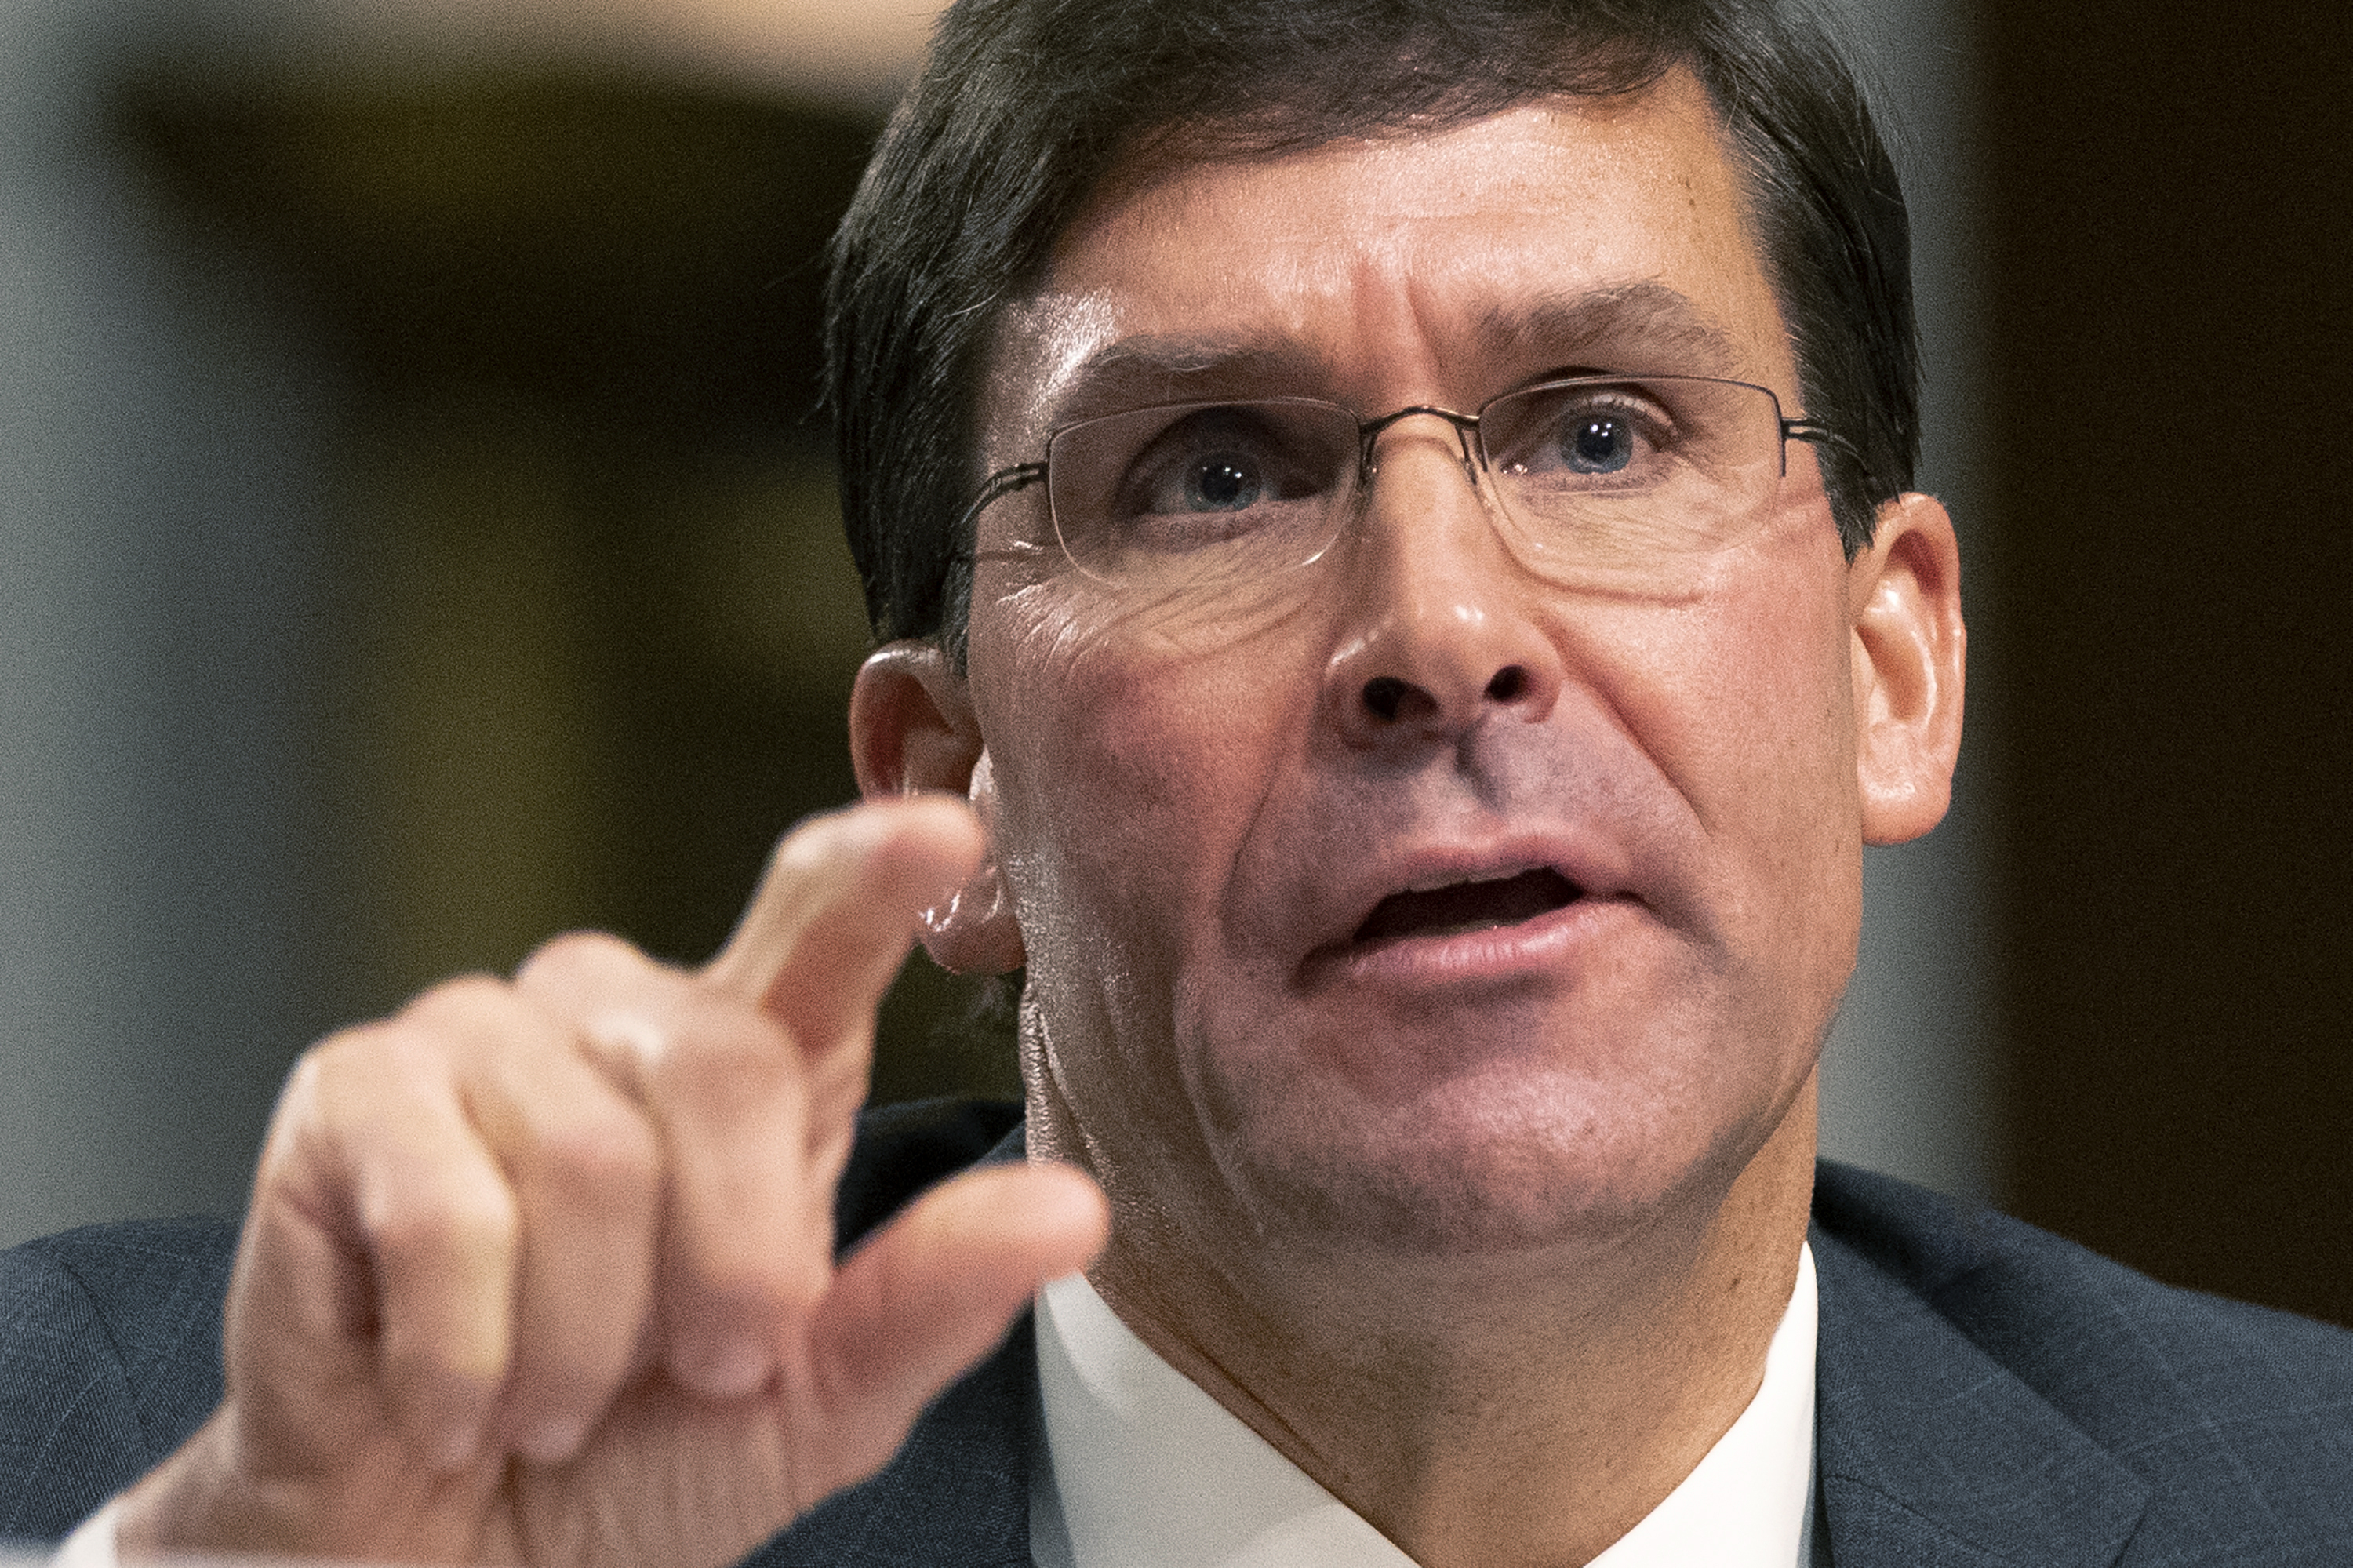 Pentagon nominee Esper calls Turkey's purchase of Russian missiles 'disappointing'